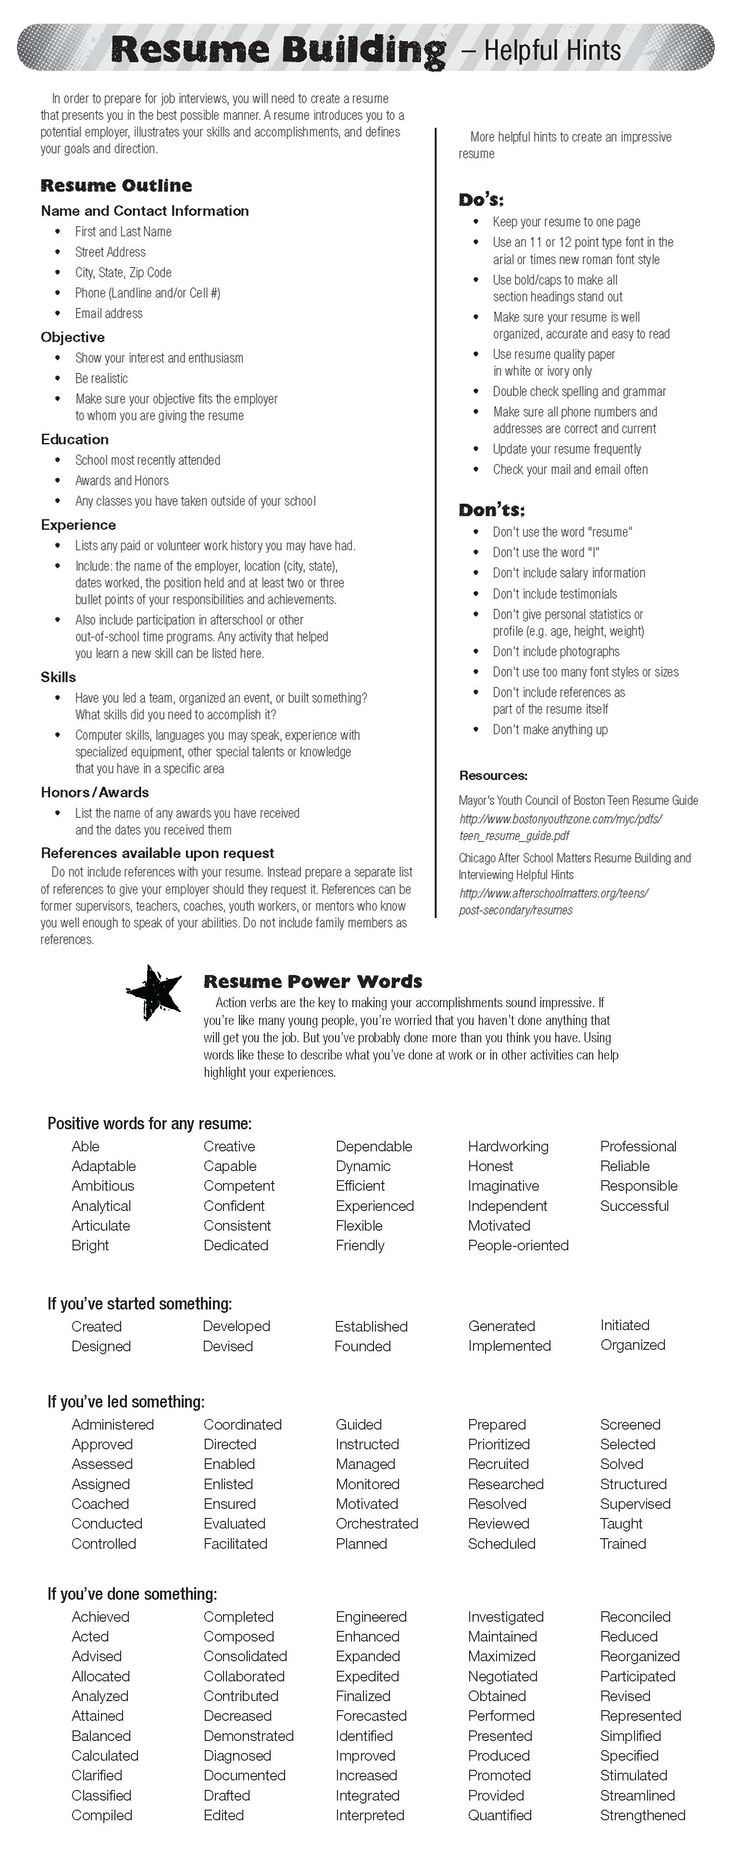 Opposenewapstandardsus  Unusual  Ideas About Resume On Pinterest  Cv Format Resume Cv And  With Magnificent  Ideas About Resume On Pinterest  Cv Format Resume Cv And Resume Templates With Nice Scp Resume Also Bank Teller Job Description For Resume In Addition Professional Summary Examples For Resume And Hr Director Resume As Well As Front Desk Clerk Resume Additionally Law Enforcement Resume Template From Pinterestcom With Opposenewapstandardsus  Magnificent  Ideas About Resume On Pinterest  Cv Format Resume Cv And  With Nice  Ideas About Resume On Pinterest  Cv Format Resume Cv And Resume Templates And Unusual Scp Resume Also Bank Teller Job Description For Resume In Addition Professional Summary Examples For Resume From Pinterestcom